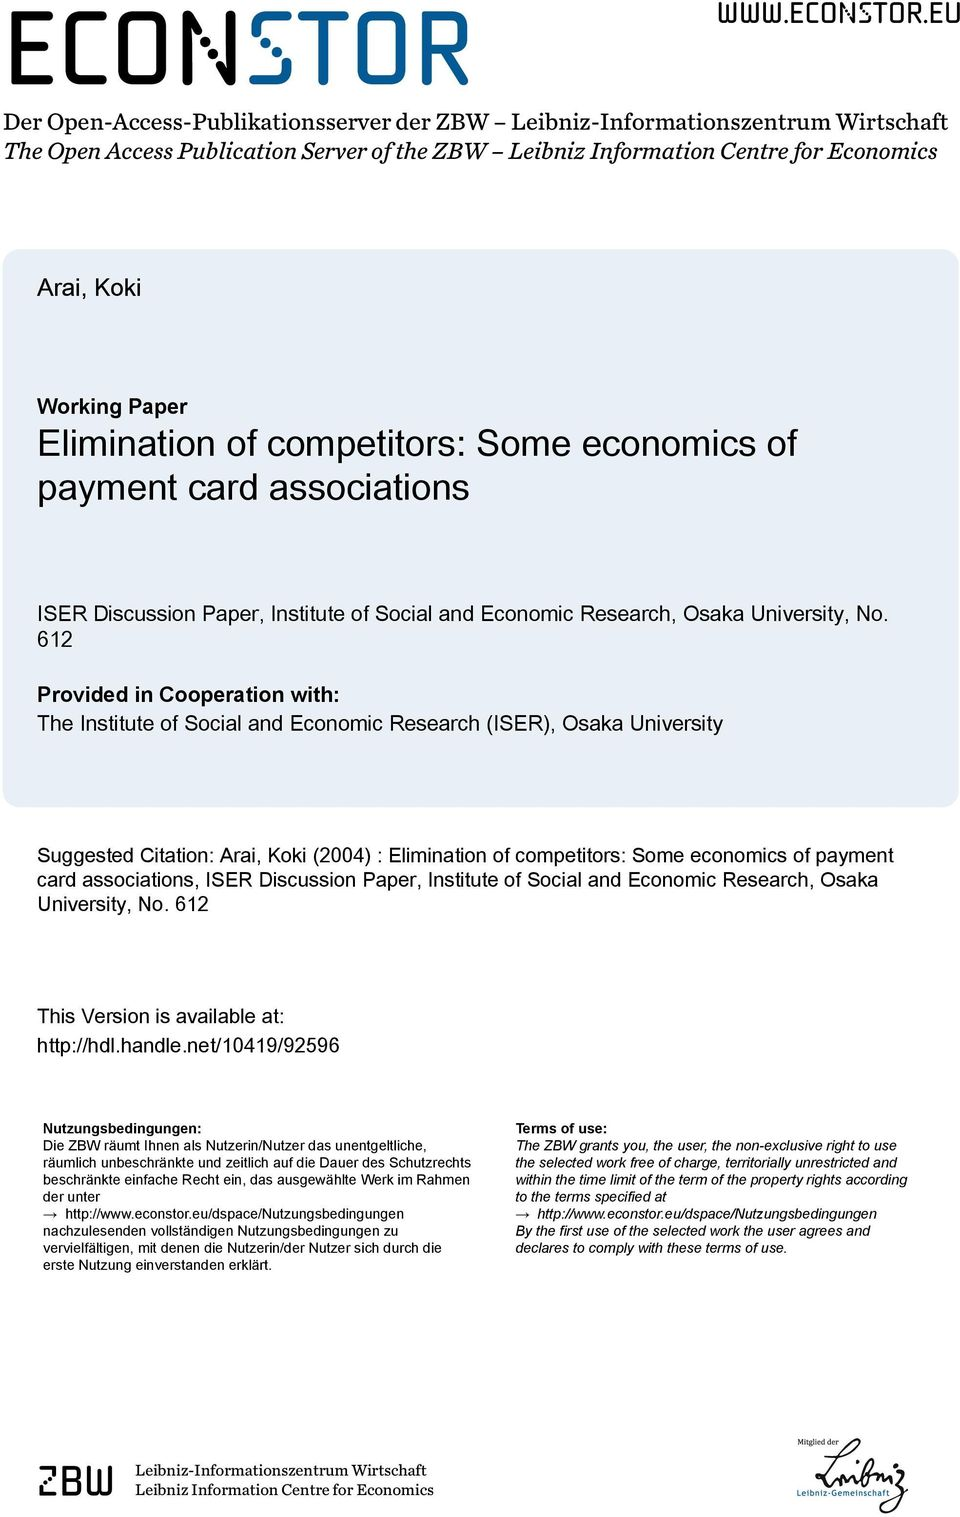 eu Der Open-Access-Publikationsserver der ZBW Leibniz-Informationszentrum Wirtschaft The Open Access Publication Server of the ZBW Leibniz Information Centre for Economics Arai, Koki Working Paper